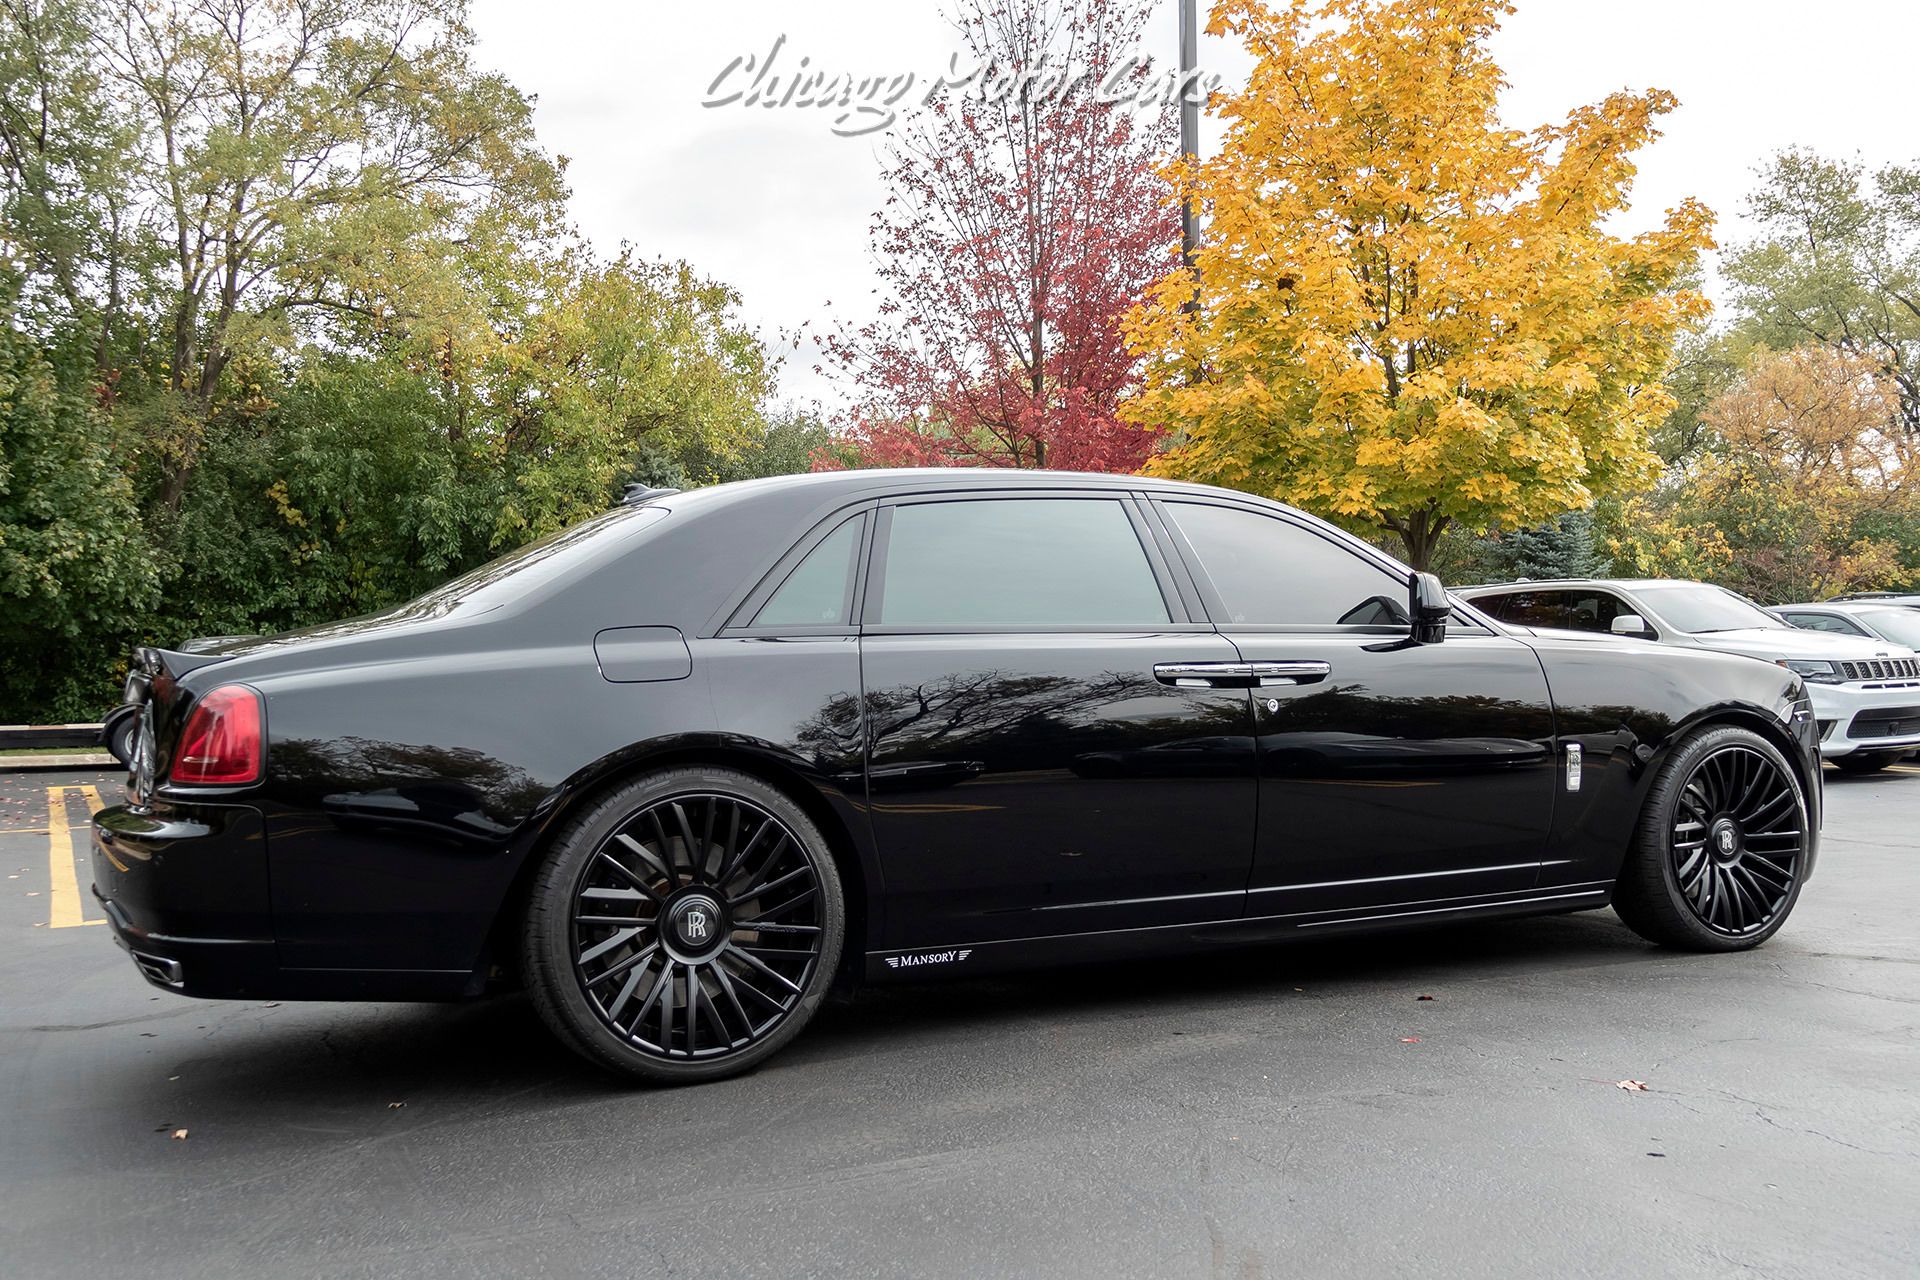 Used 2013 Rolls Royce Ghost Ewb Mansory Original Msrp 391k 60k In Upgrades Low Miles For Sale Special Pricing Chicago Motor Cars Stock 16619a